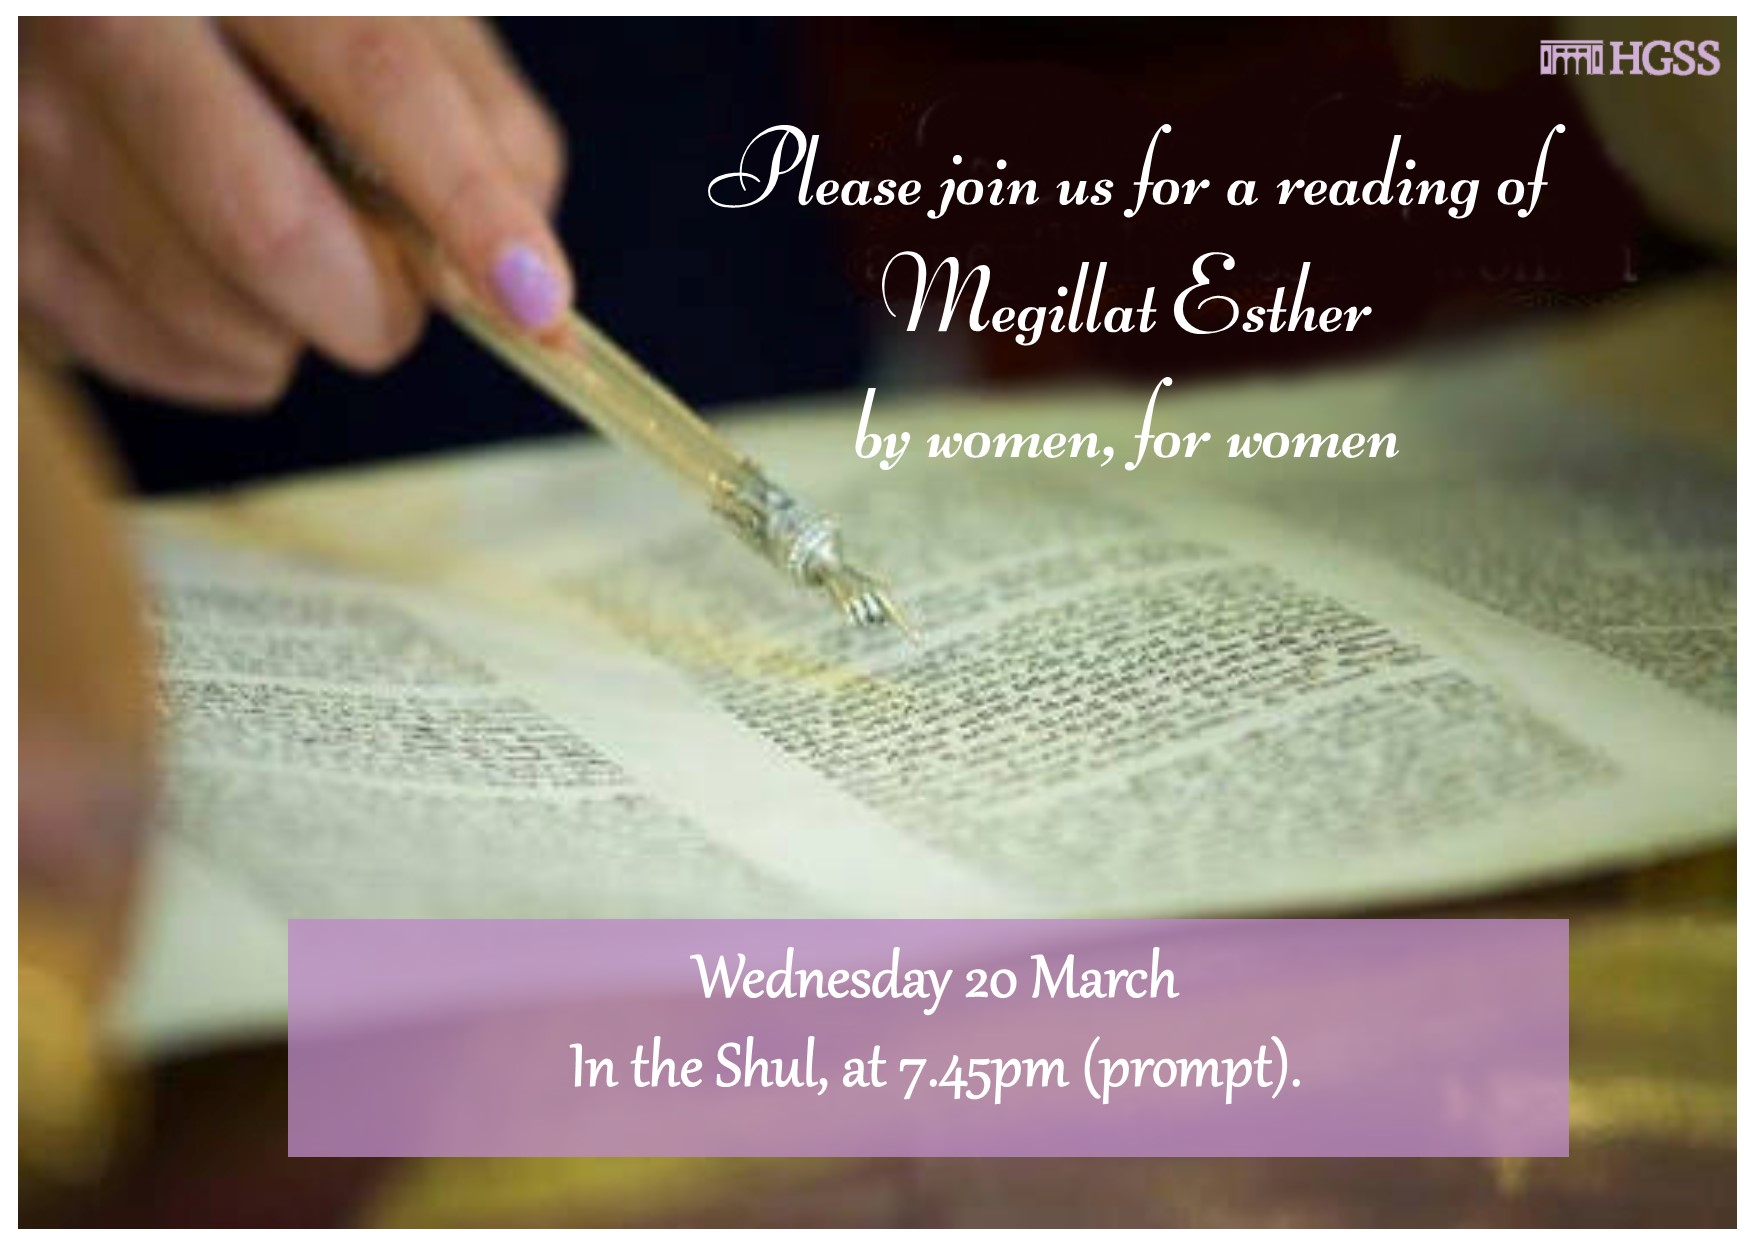 Megillah Reading for Women by Women @ Shul